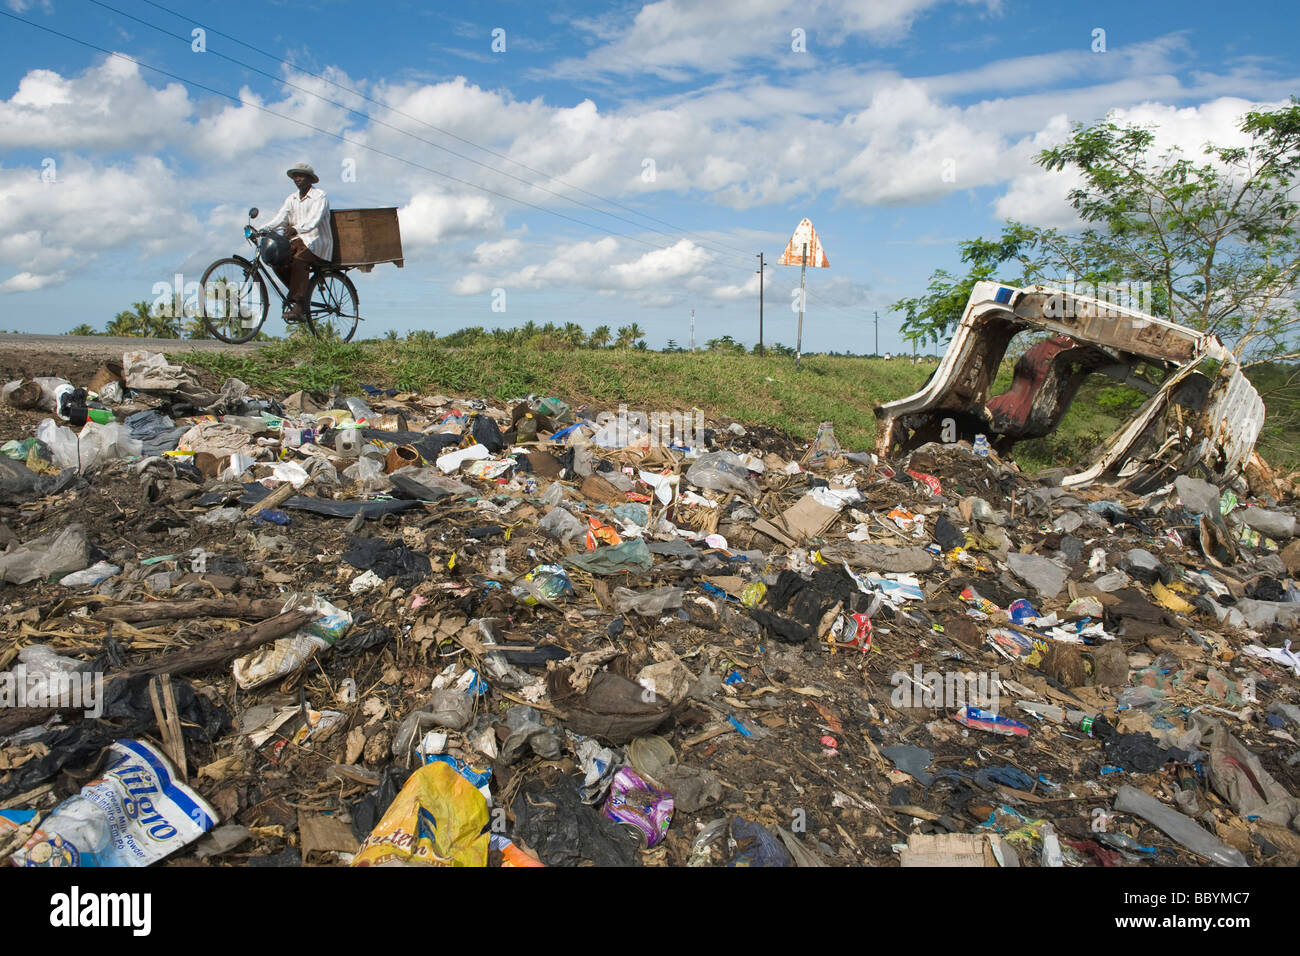 A rubbish dump on the outskirts of Quelimane Mozambique - Stock Image